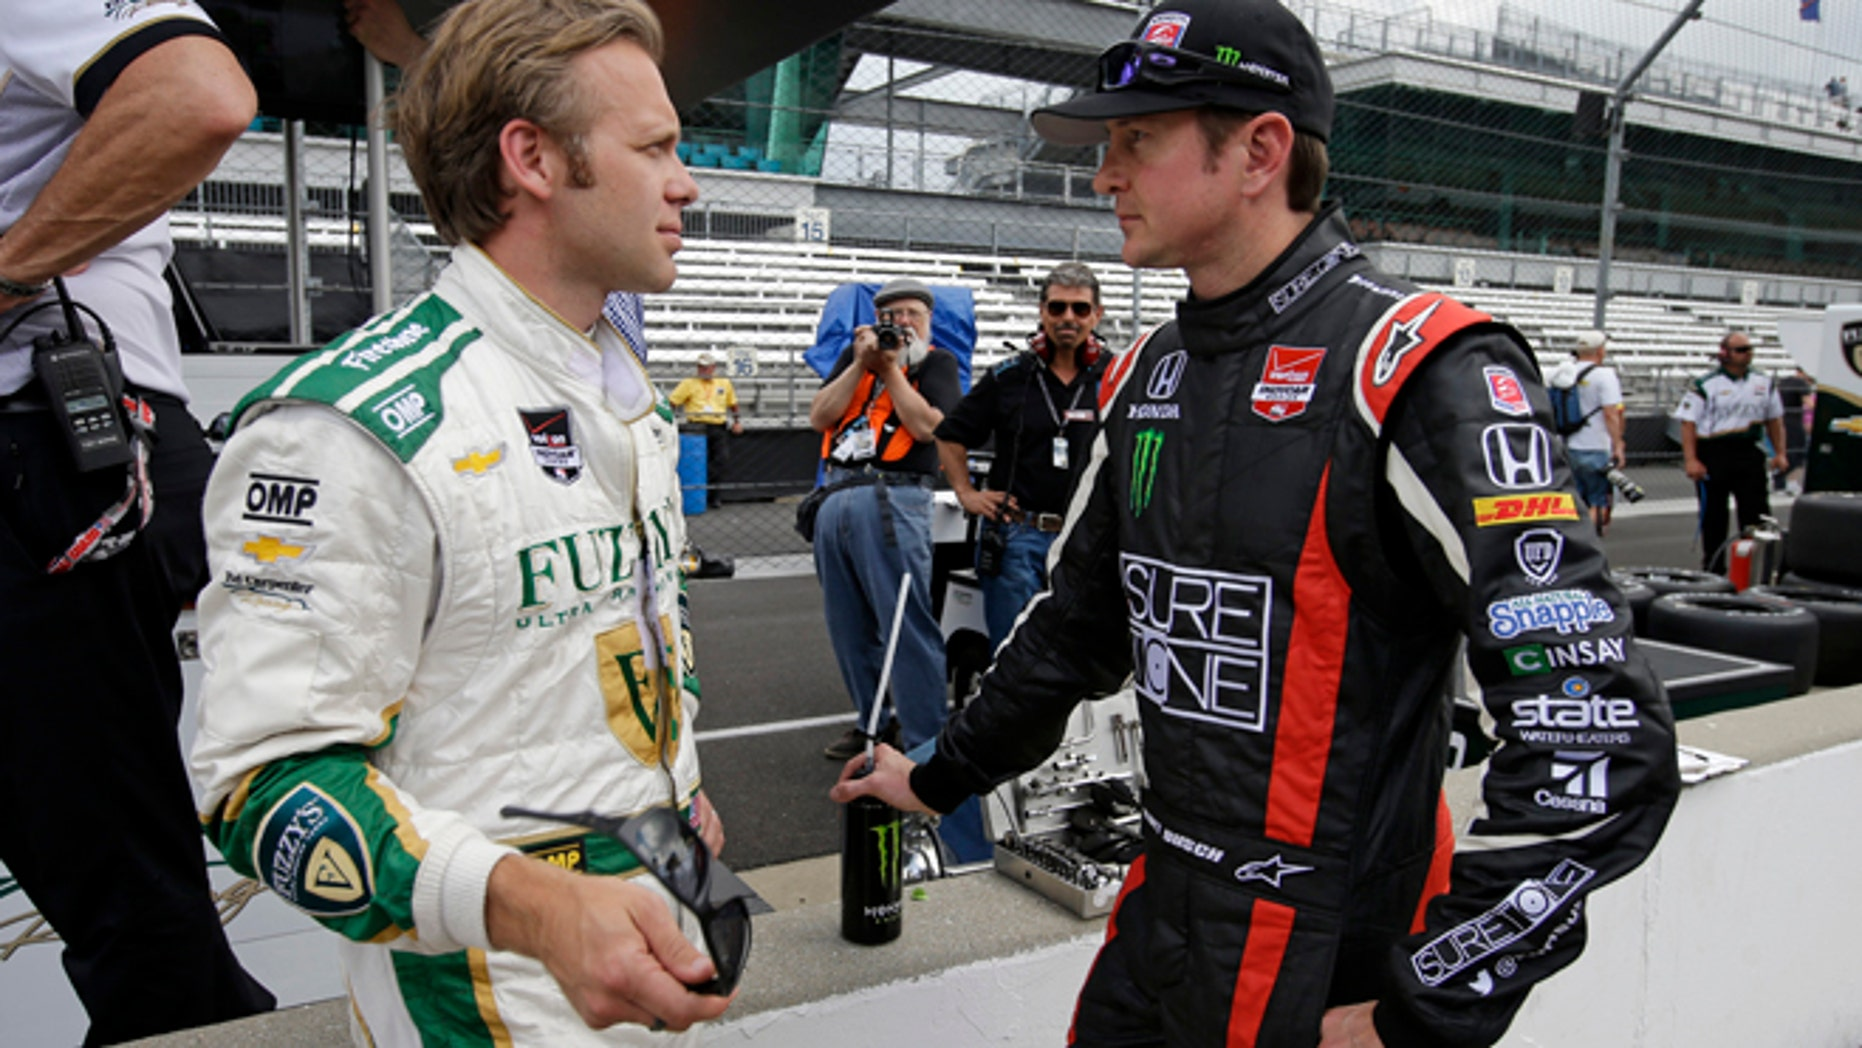 May 11, 2014:  Kurt Busch, right, talks with Ed Carpenter during practice for Indianapolis 500 IndyCar auto race at the Indianapolis Motor Speedway in Indianapolis. (AP)